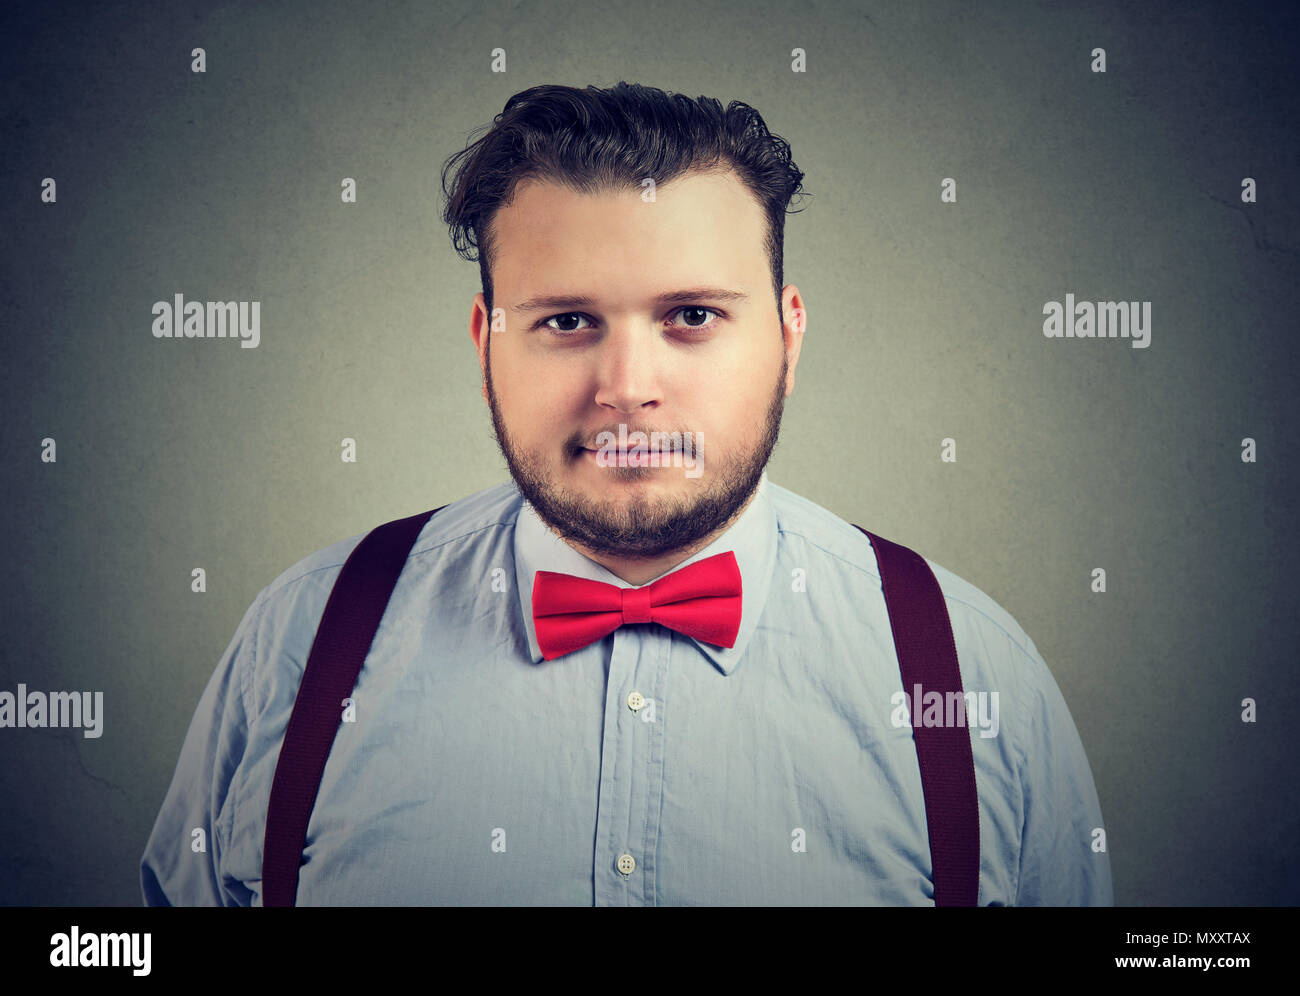 Young bearded chubby man wearing formal outfit with red bow tie looking contently at camera on gray - Stock Image